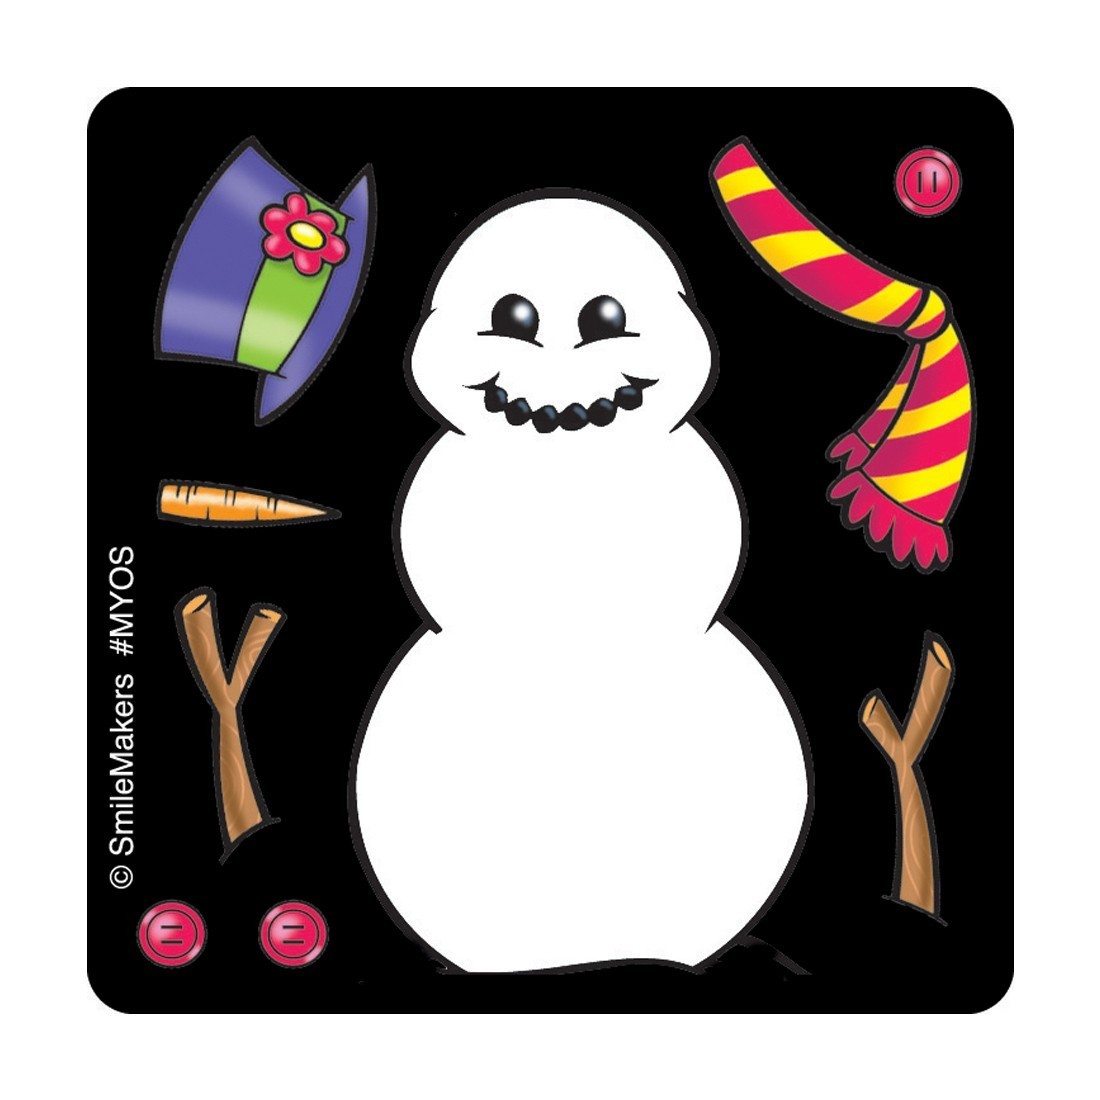 Make Your Own™ Snowman Stickers               [image]